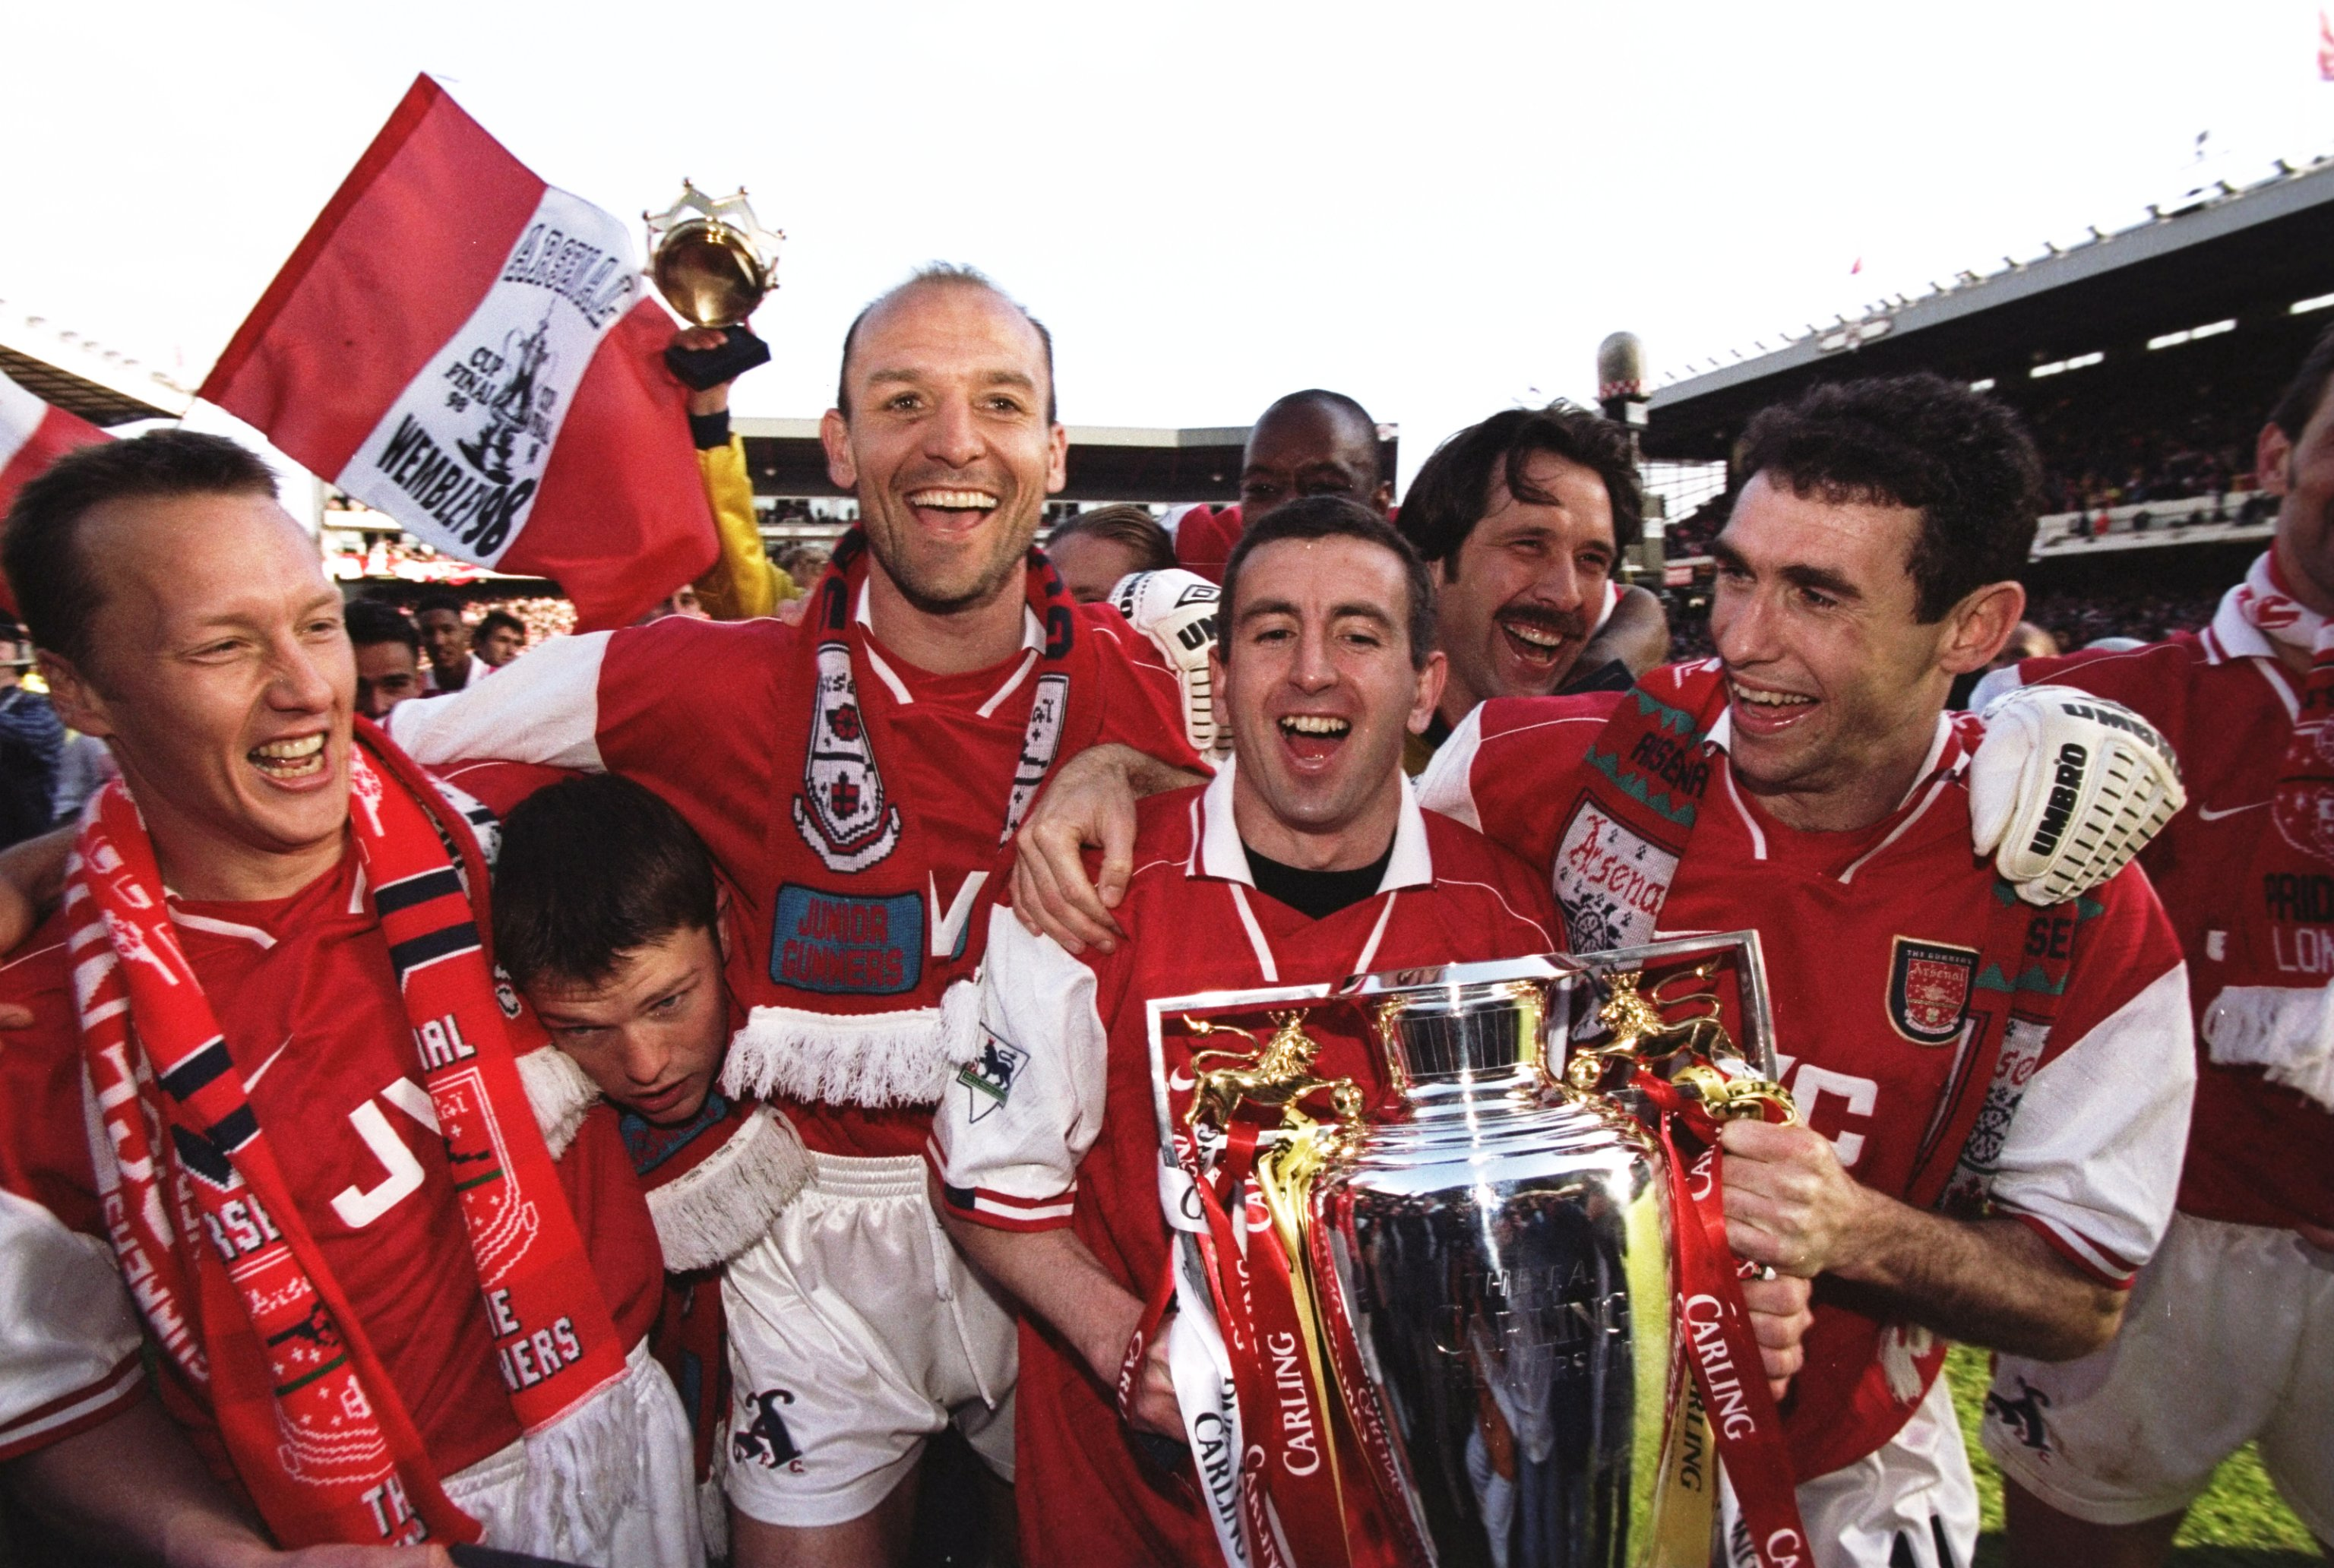 Martin Keown reveals the role Tina Turner played in helping Arsenal win the double in 1997-98